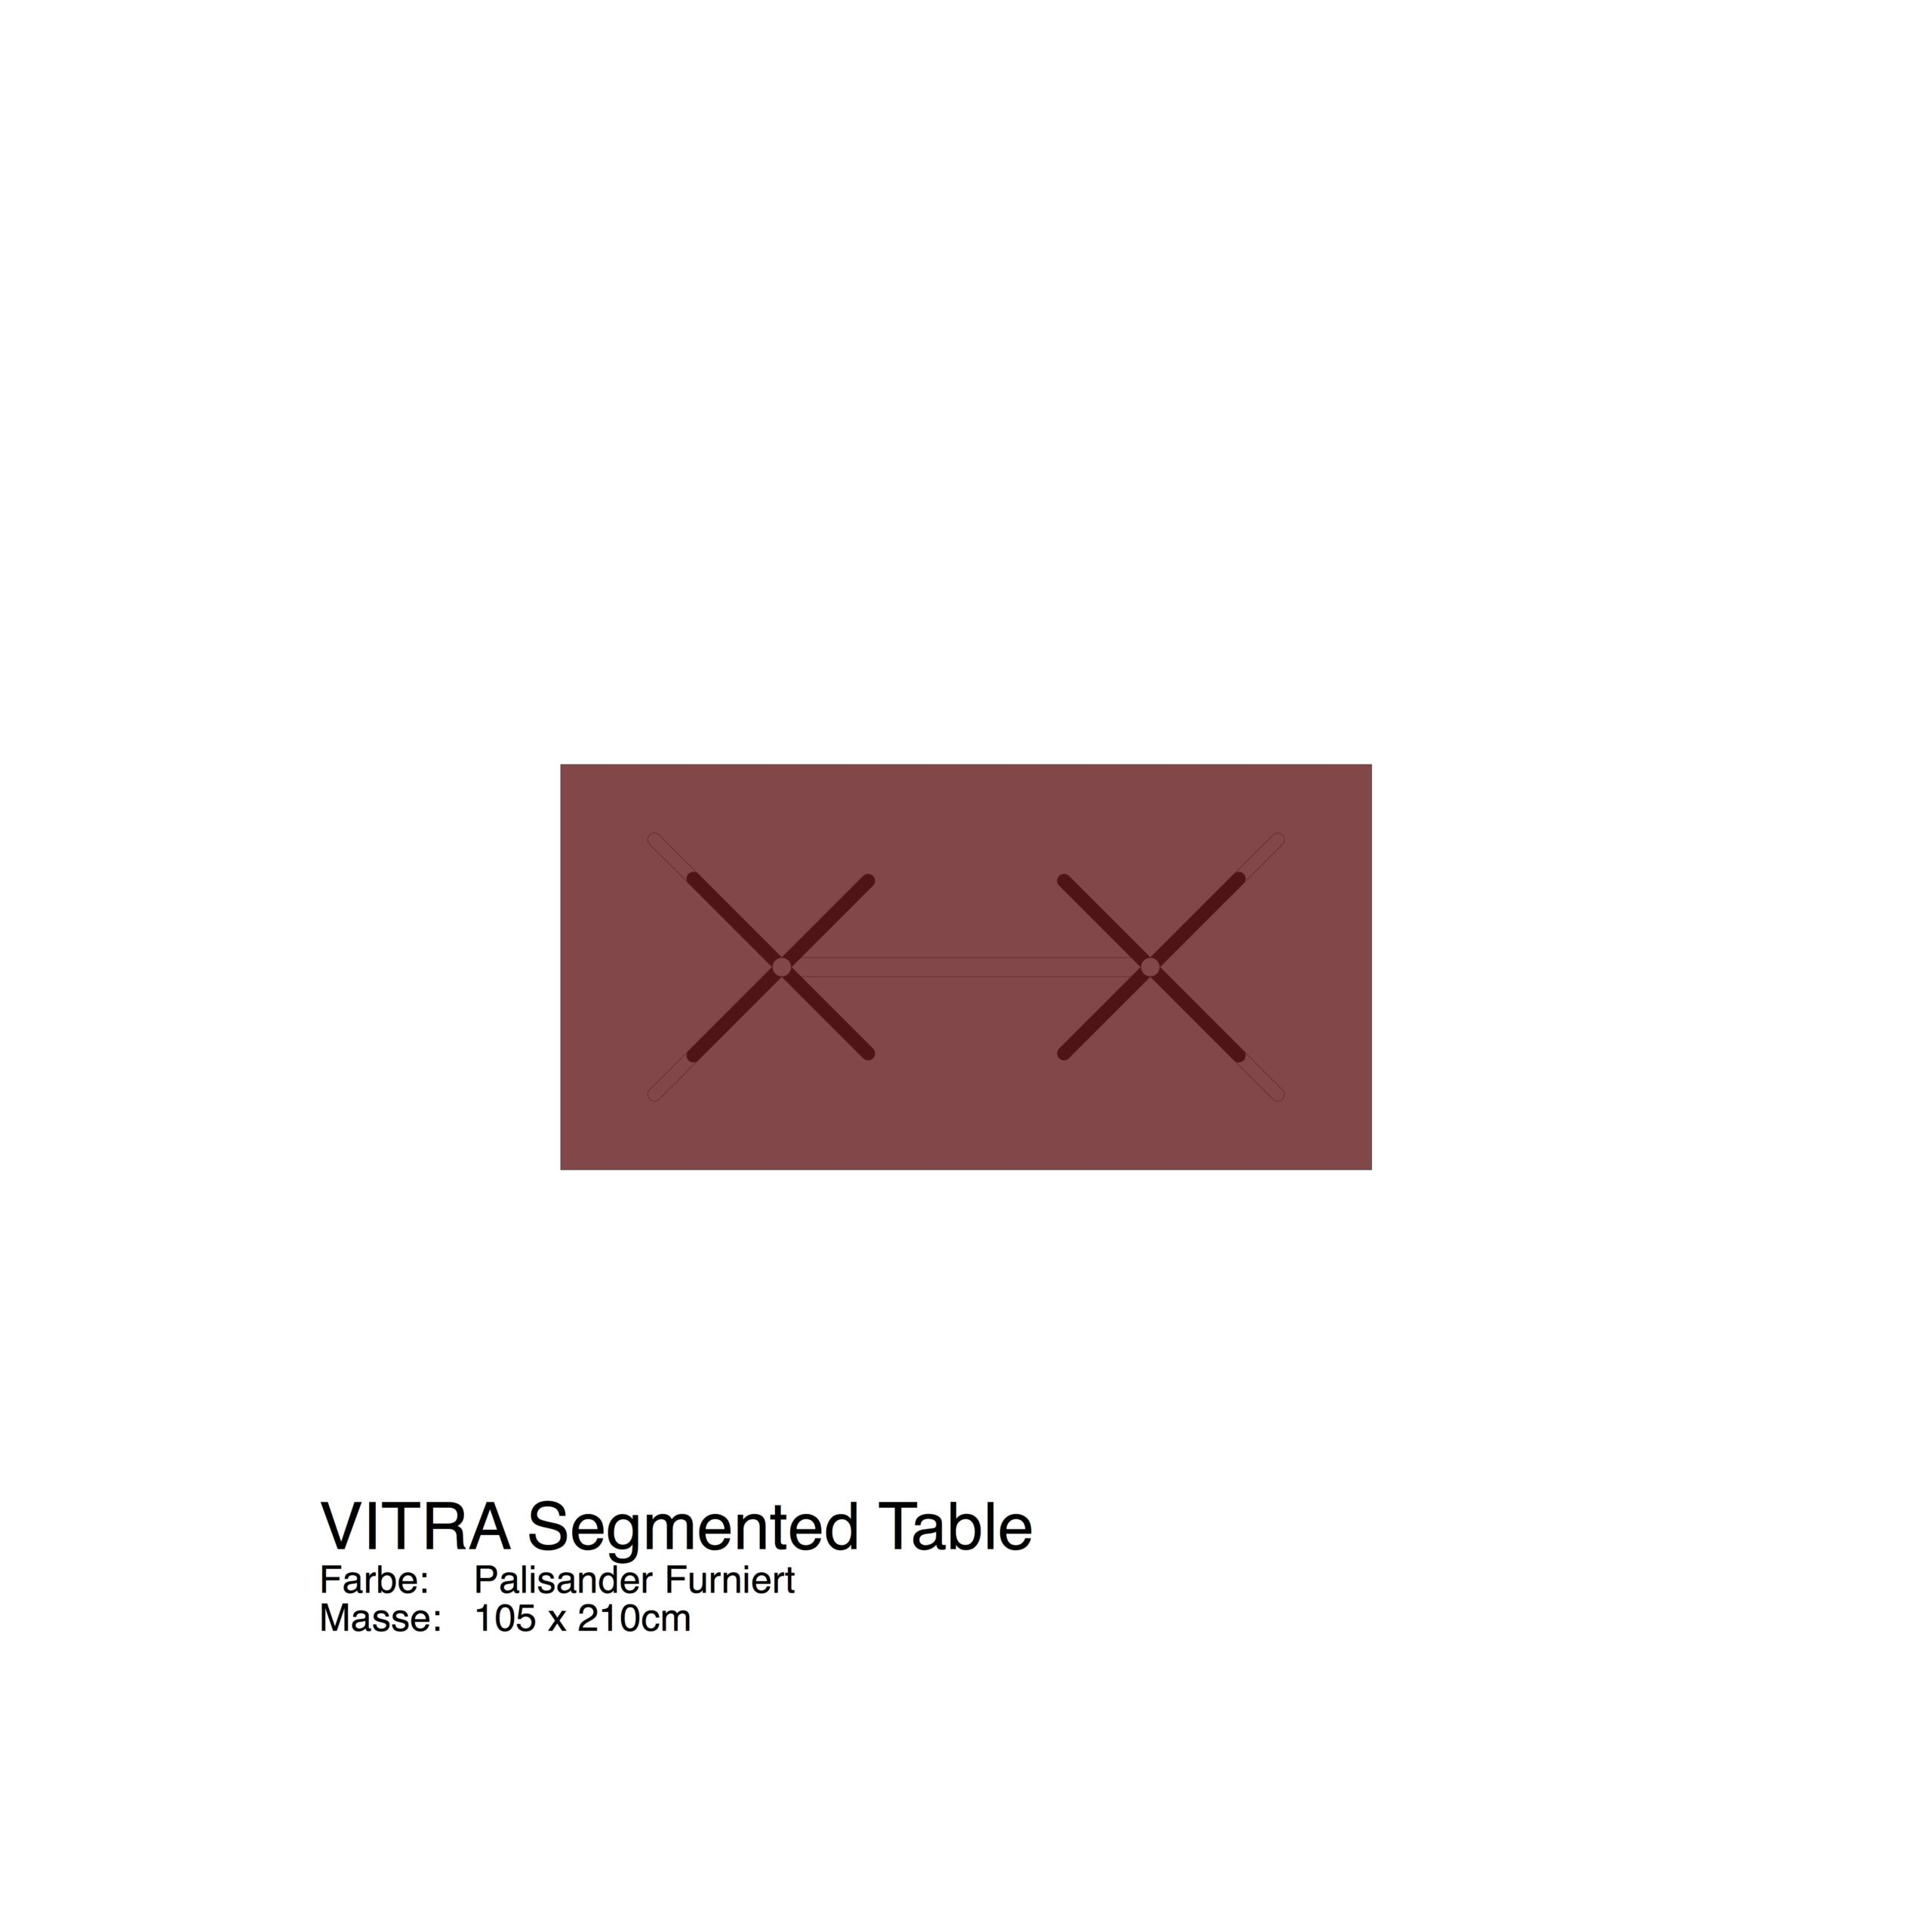 VITRA Segmented Table 105 x 210cm